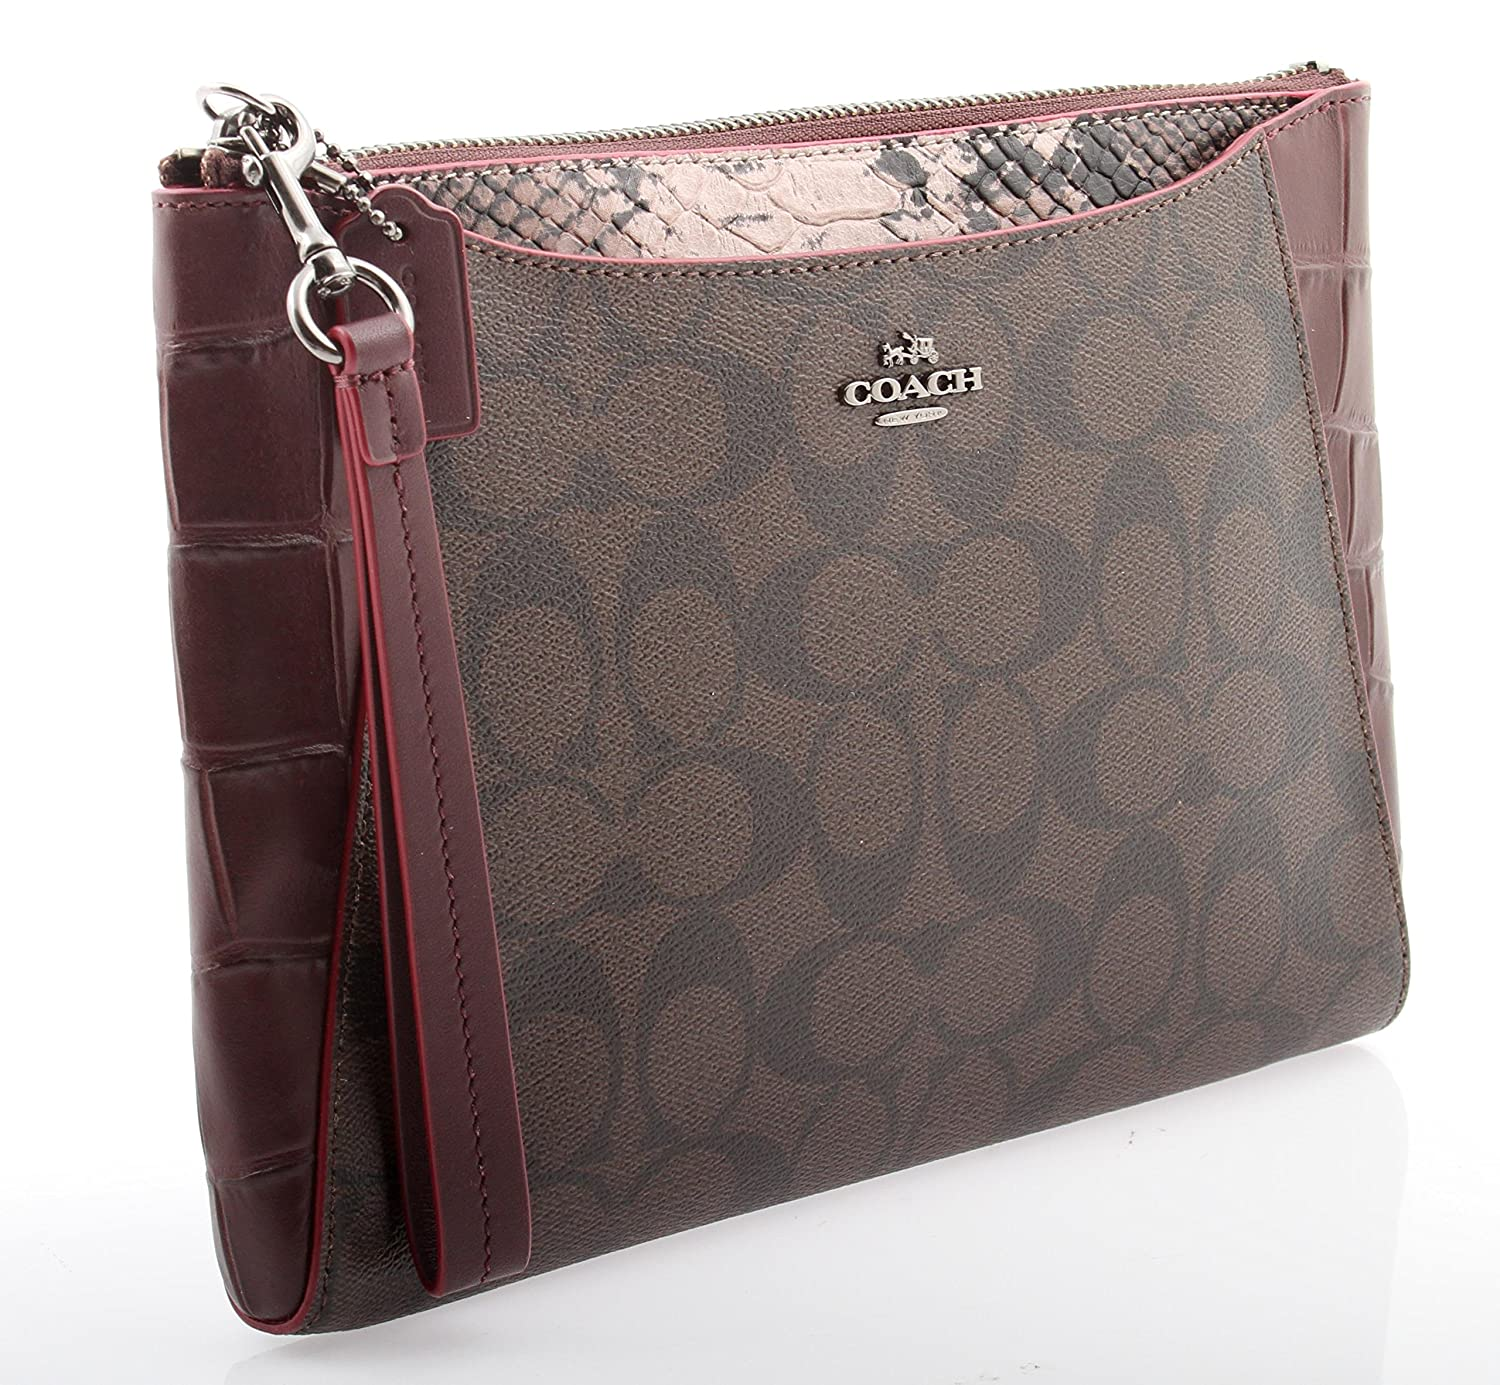 Coach Morgan Clutch 24 in Signature with Exotic Mix Trim, F54628 QBFDC